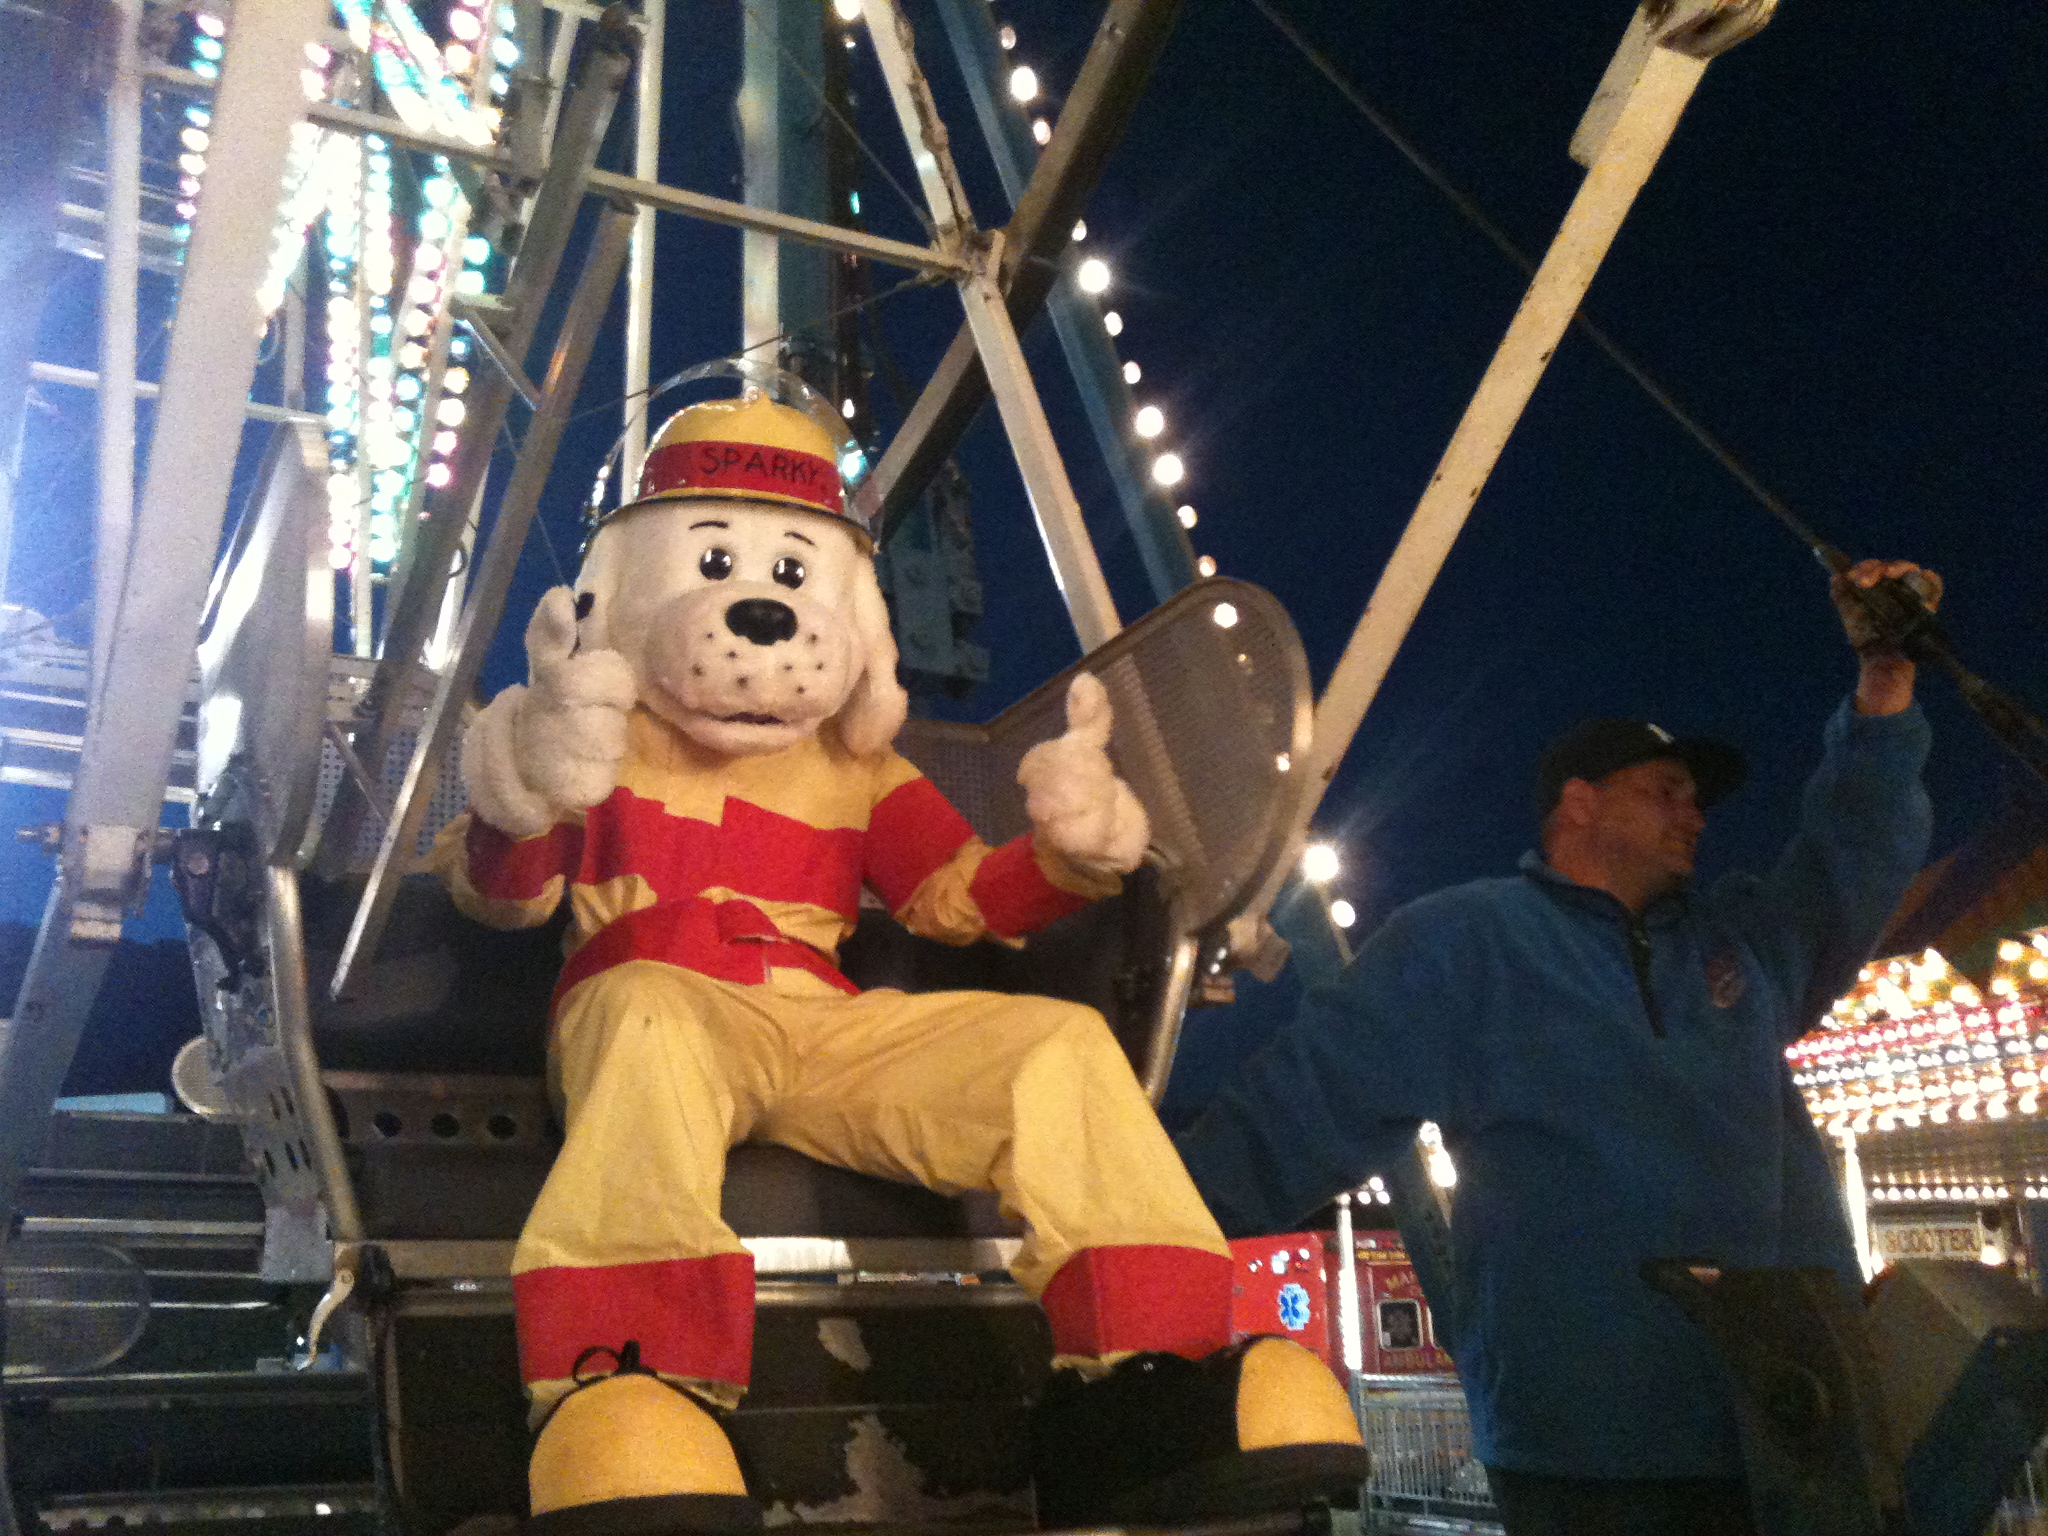 Sparky the Fire Prevention Dog goes to the Carnival